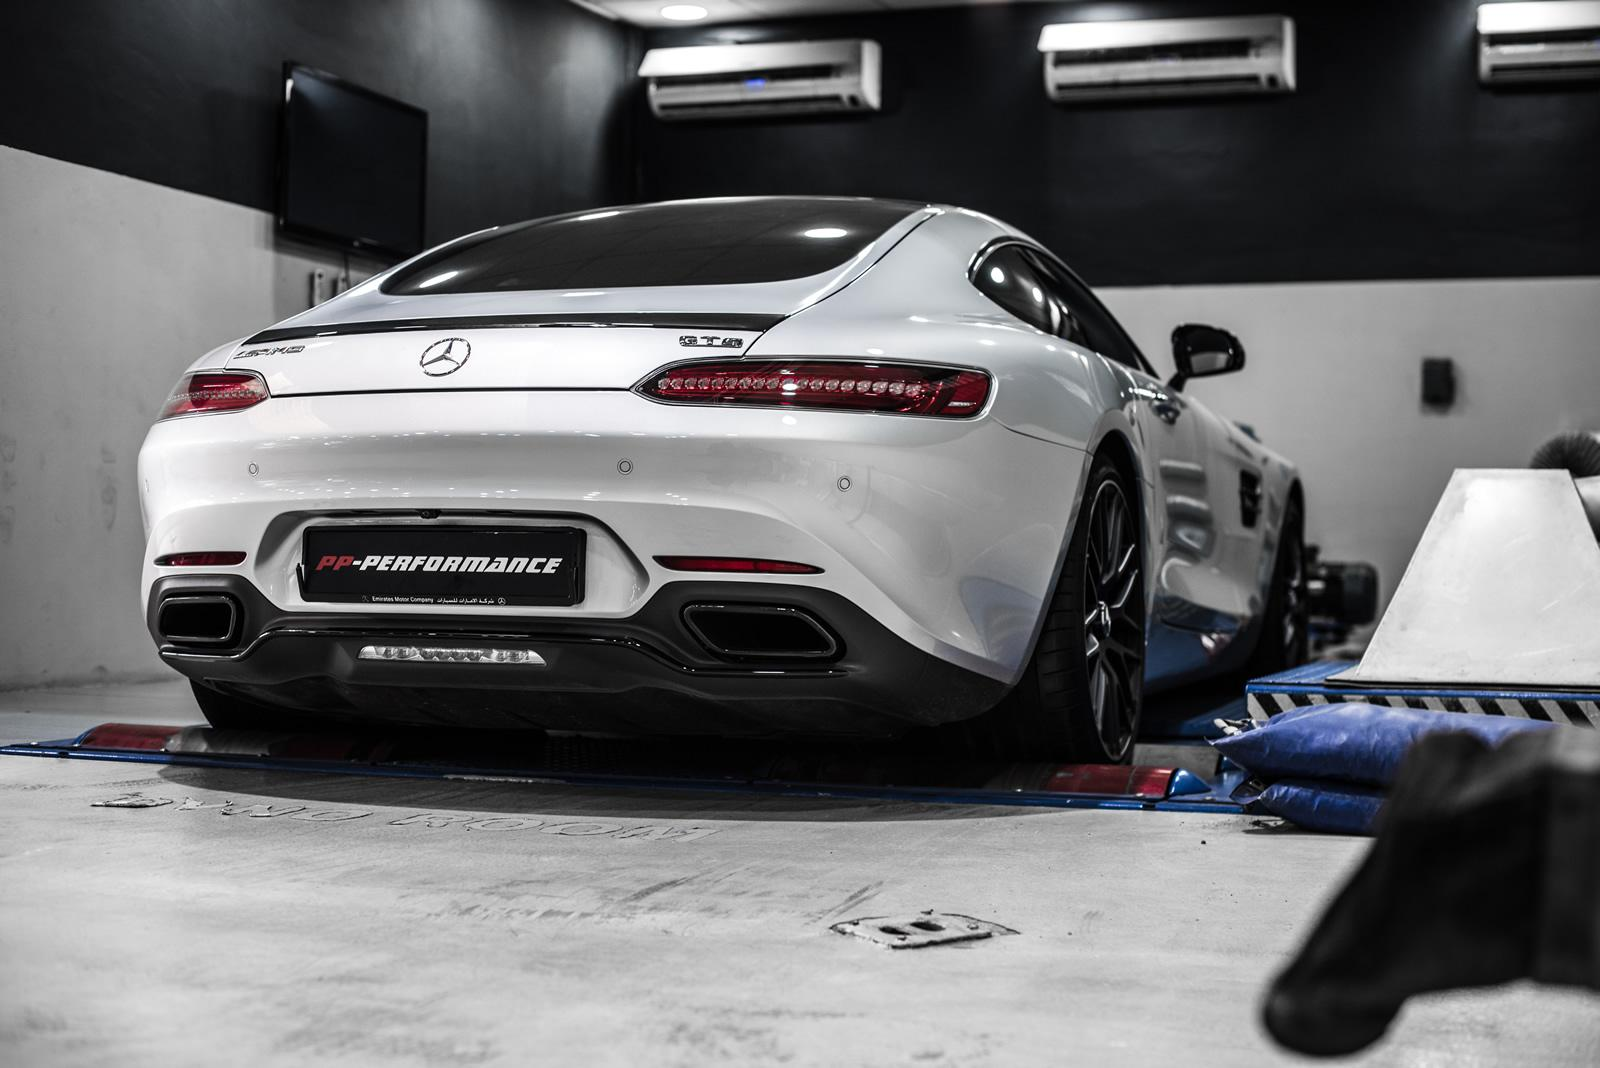 German Car Brands >> Mercedes-AMG GT and C63 Gain 100 HP from PP-Performance - autoevolution